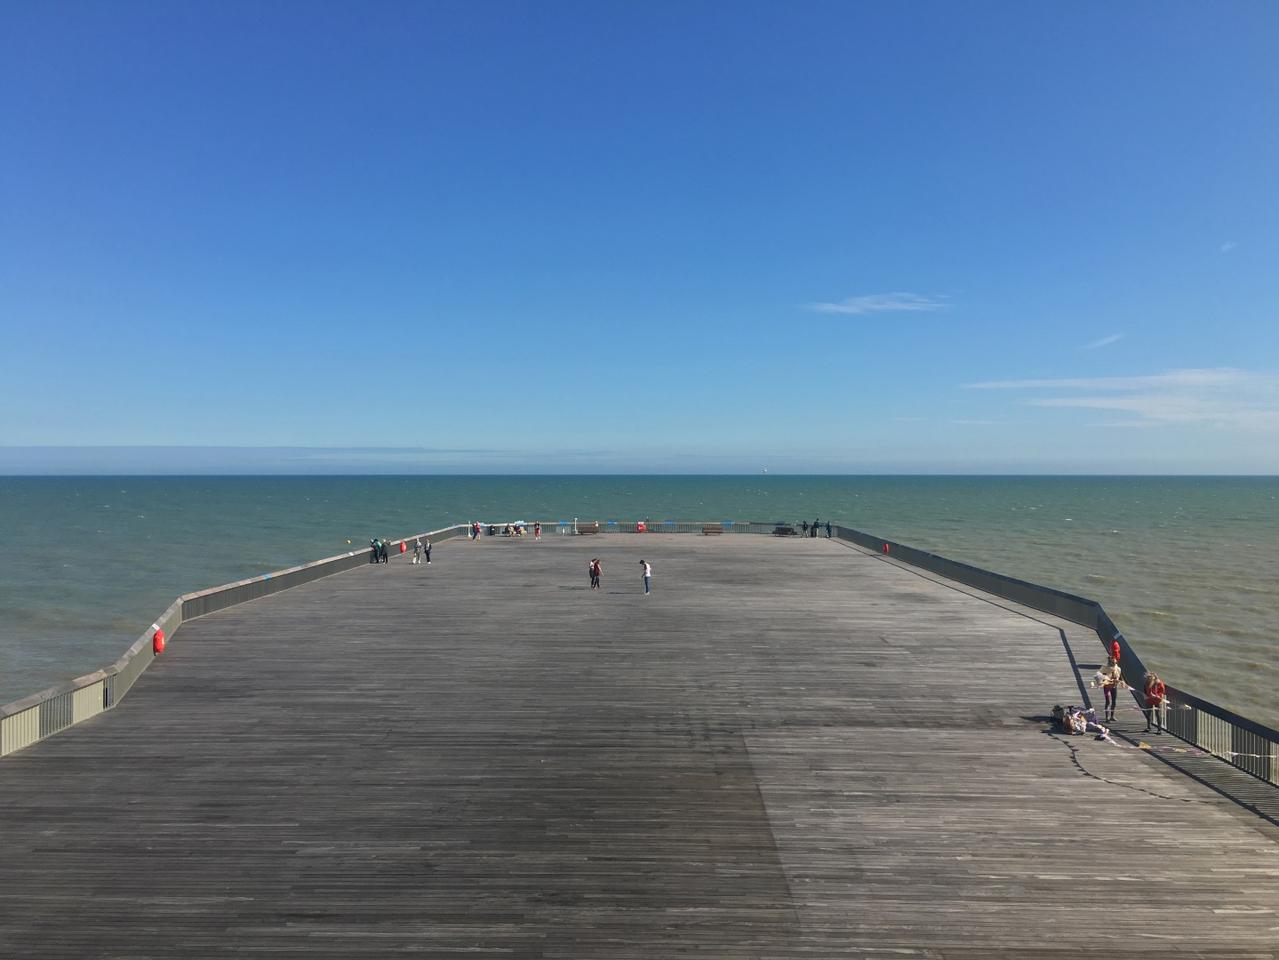 dRMM architects took a contemporary, less-is-more approach to the Hastings Pier project